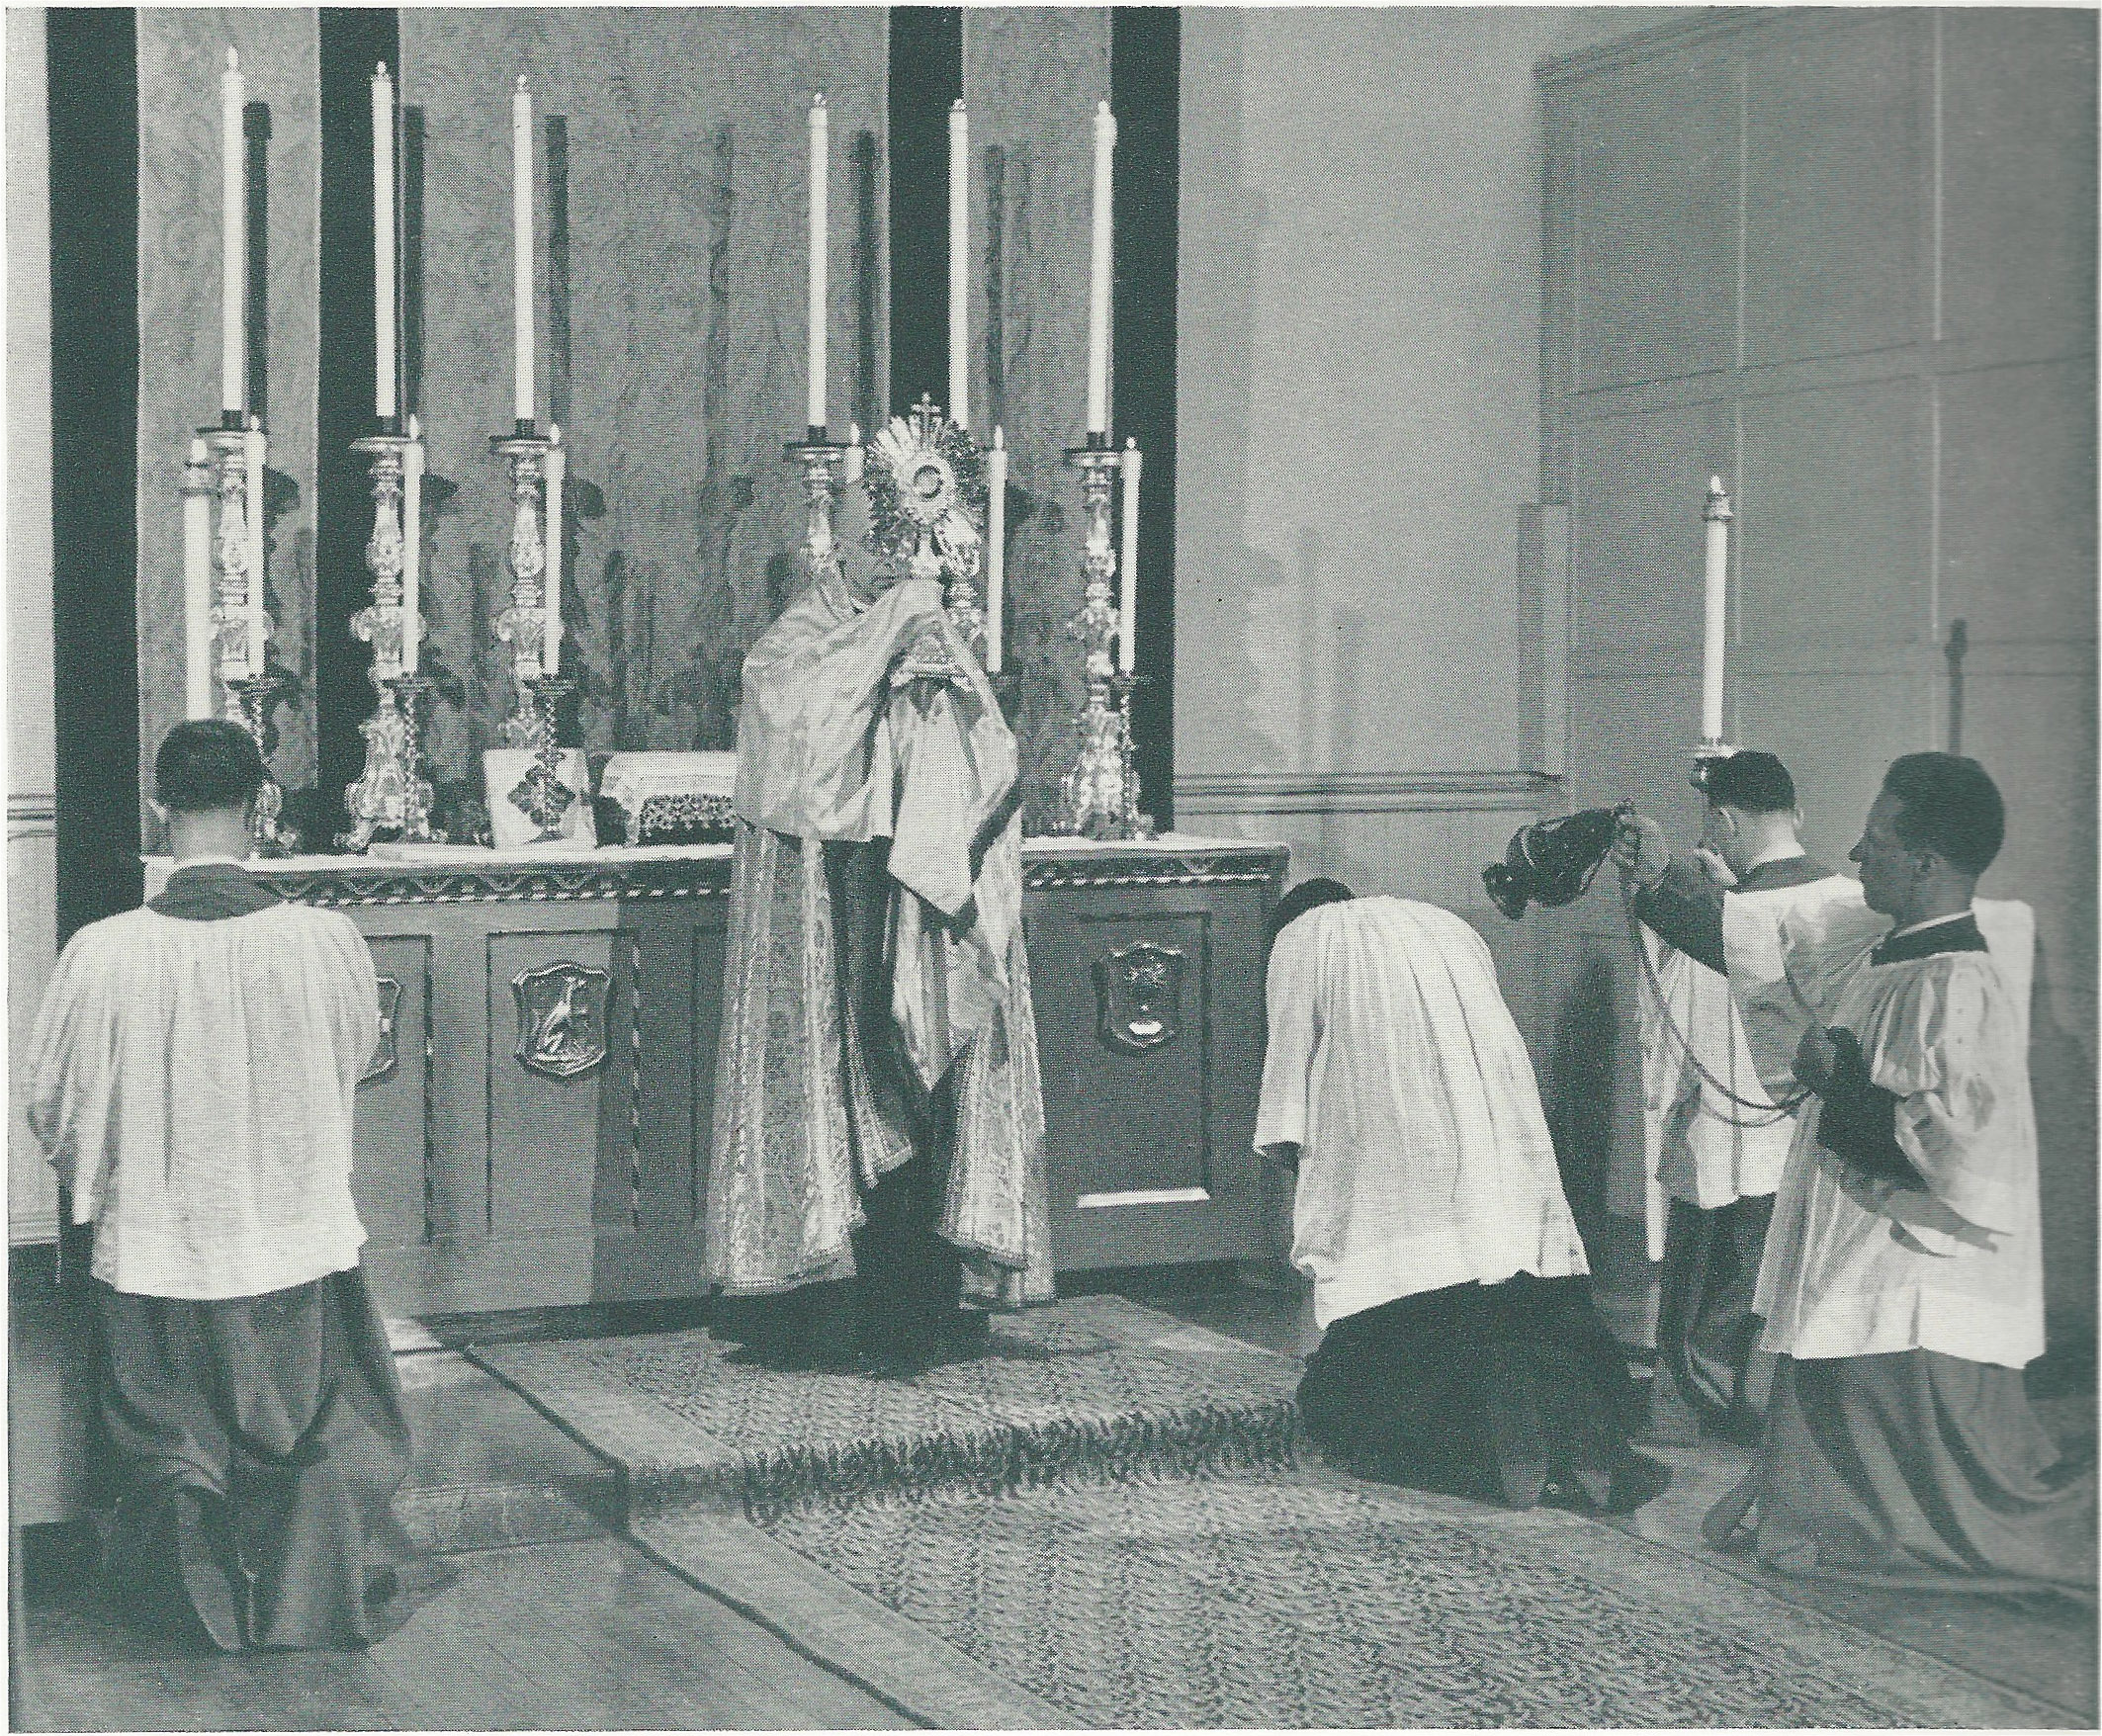 Benediction of the Blessed Sacrament in Saint Joseph's Chapel in the 1940s.